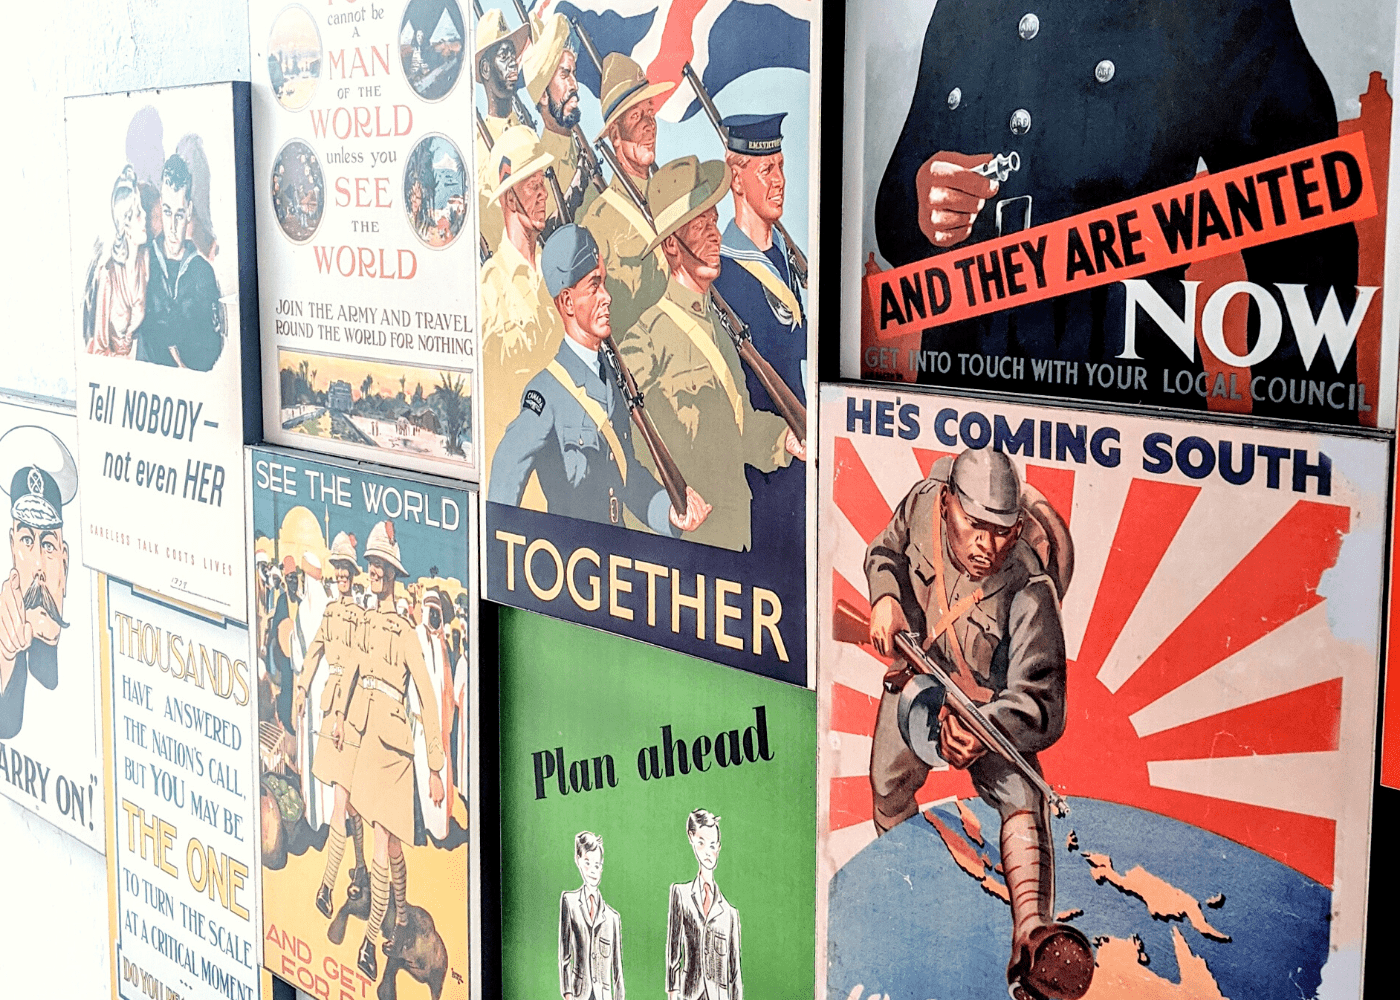 Our guide to Fort Siloso: WWII posters